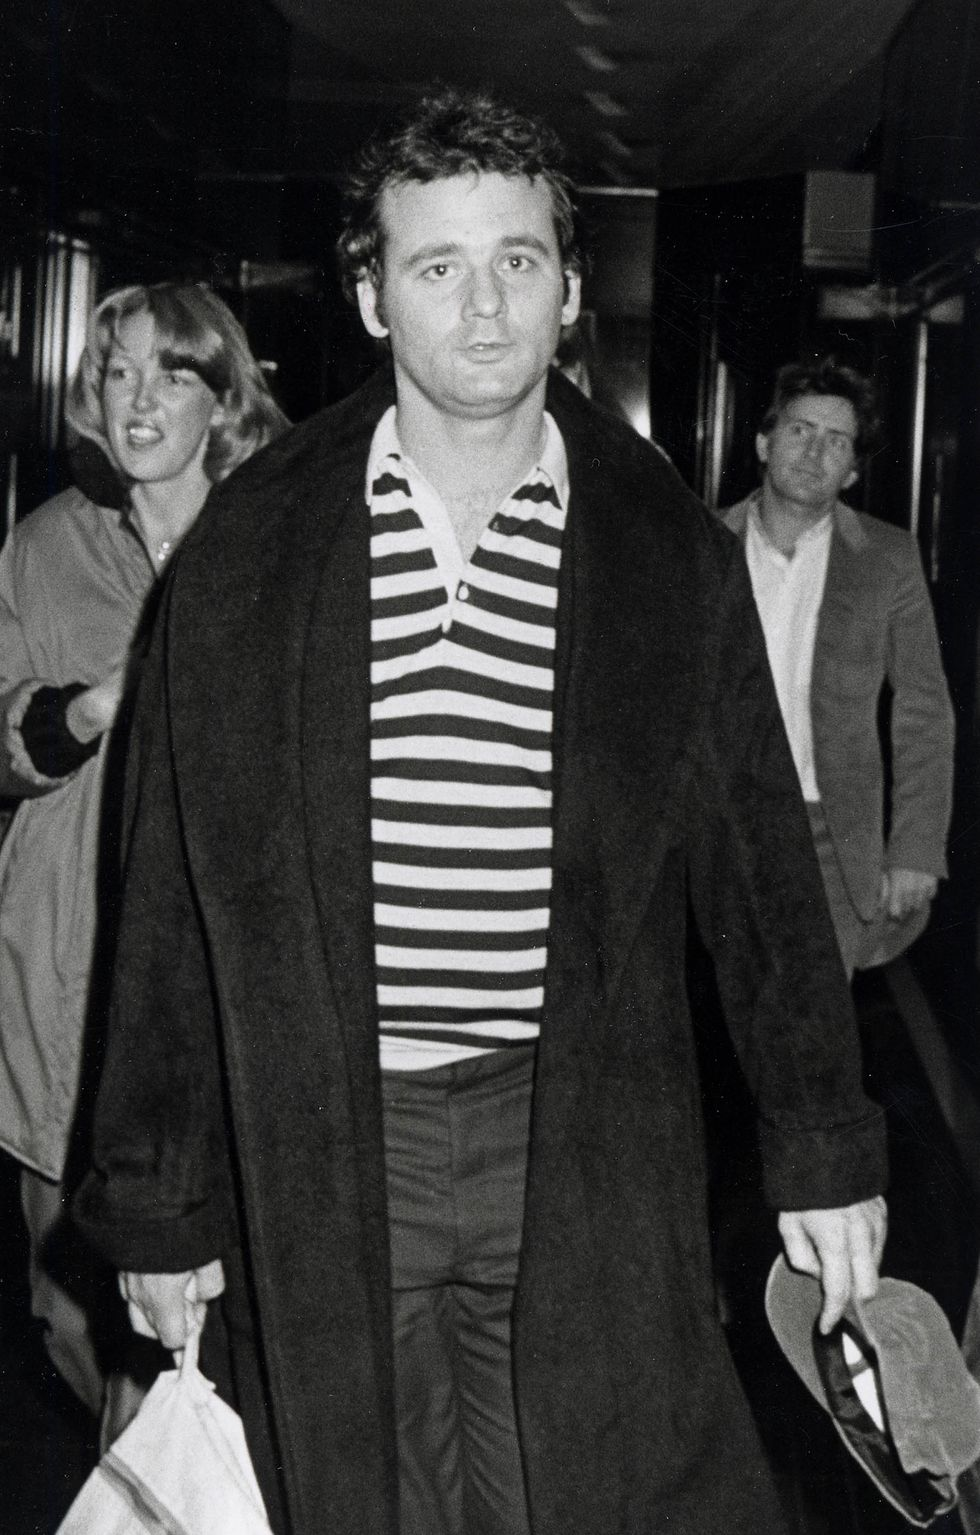 Bill Murray out in NYC in 1979.